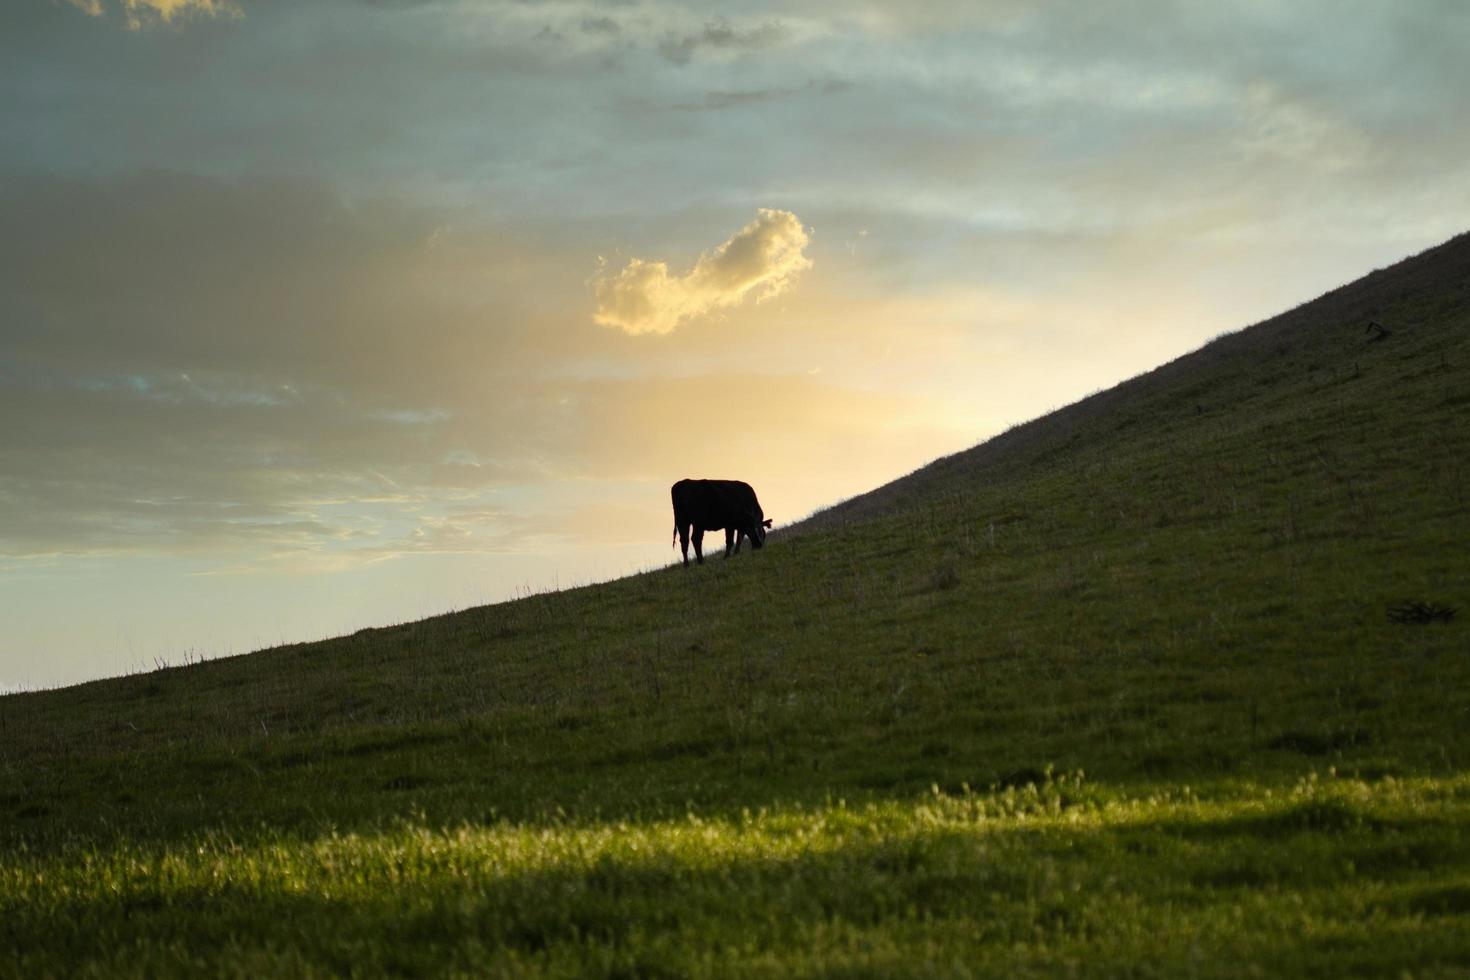 Cow grazing at sunset photo